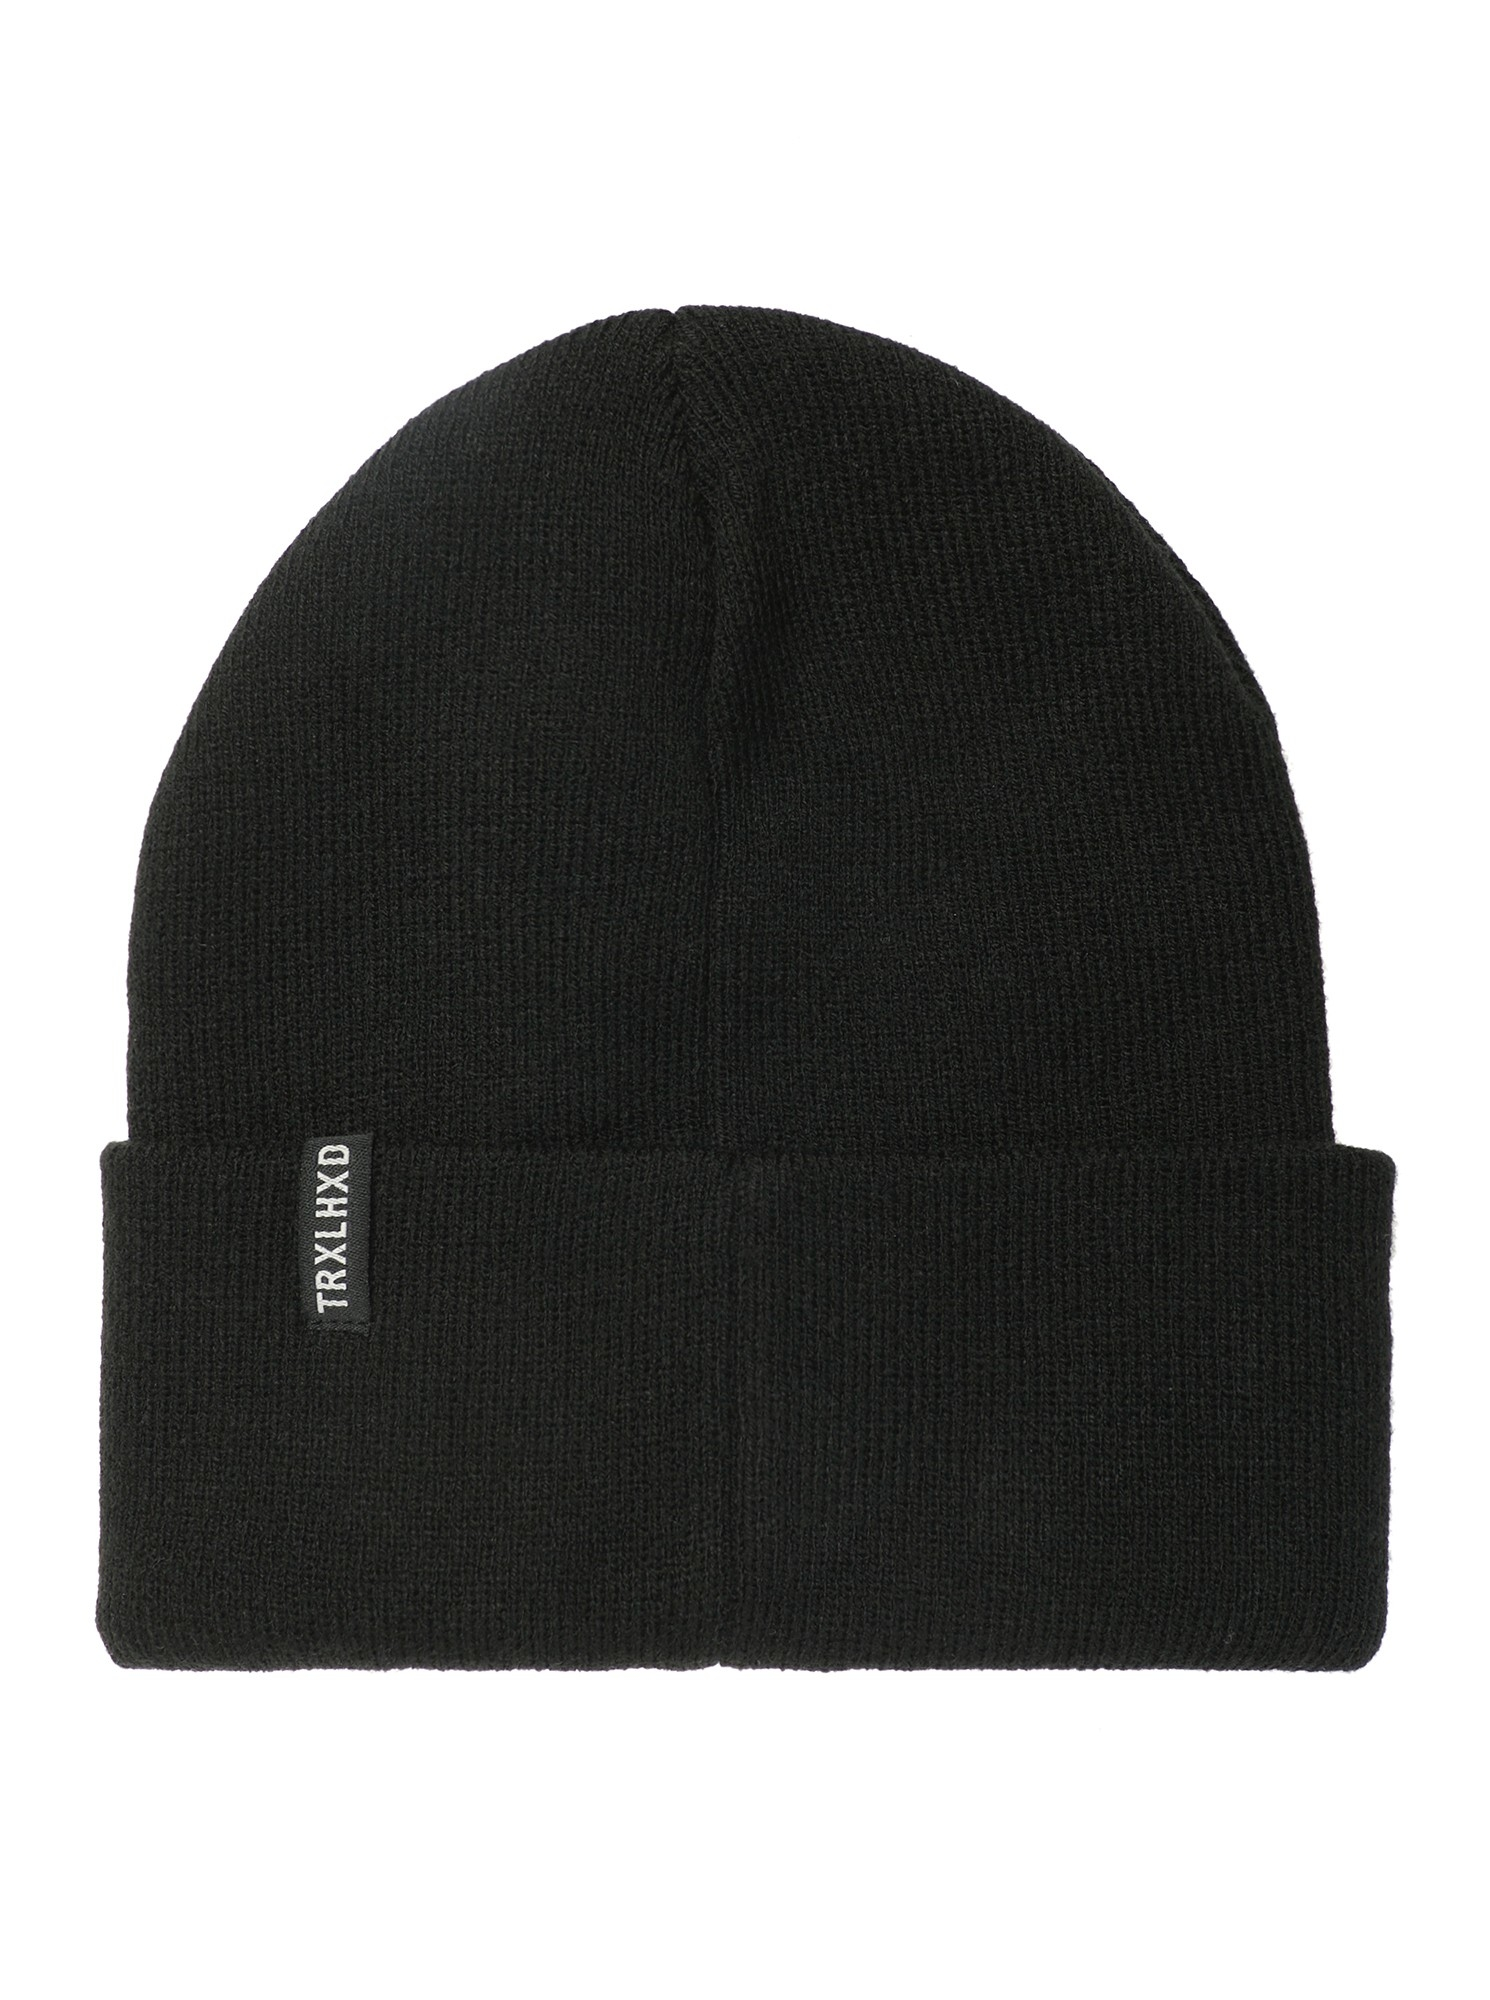 Шапка TRAILHEAD HAT19-PTH-SHIP18-TBK, HAT19-PTH-SHIP18_TBK, фото 3